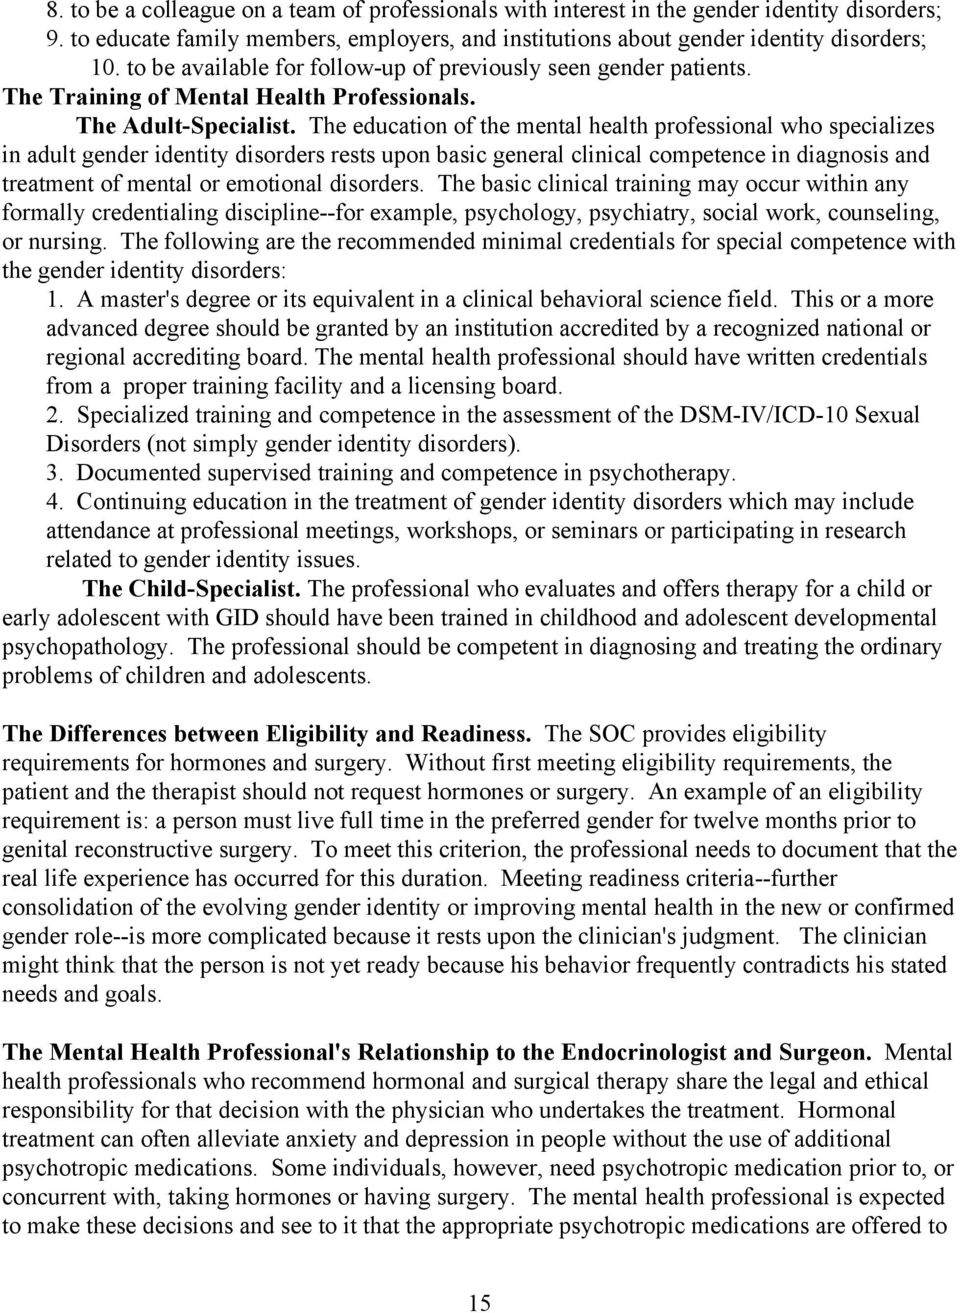 The education of the mental health professional who specializes in adult gender identity disorders rests upon basic general clinical competence in diagnosis and treatment of mental or emotional